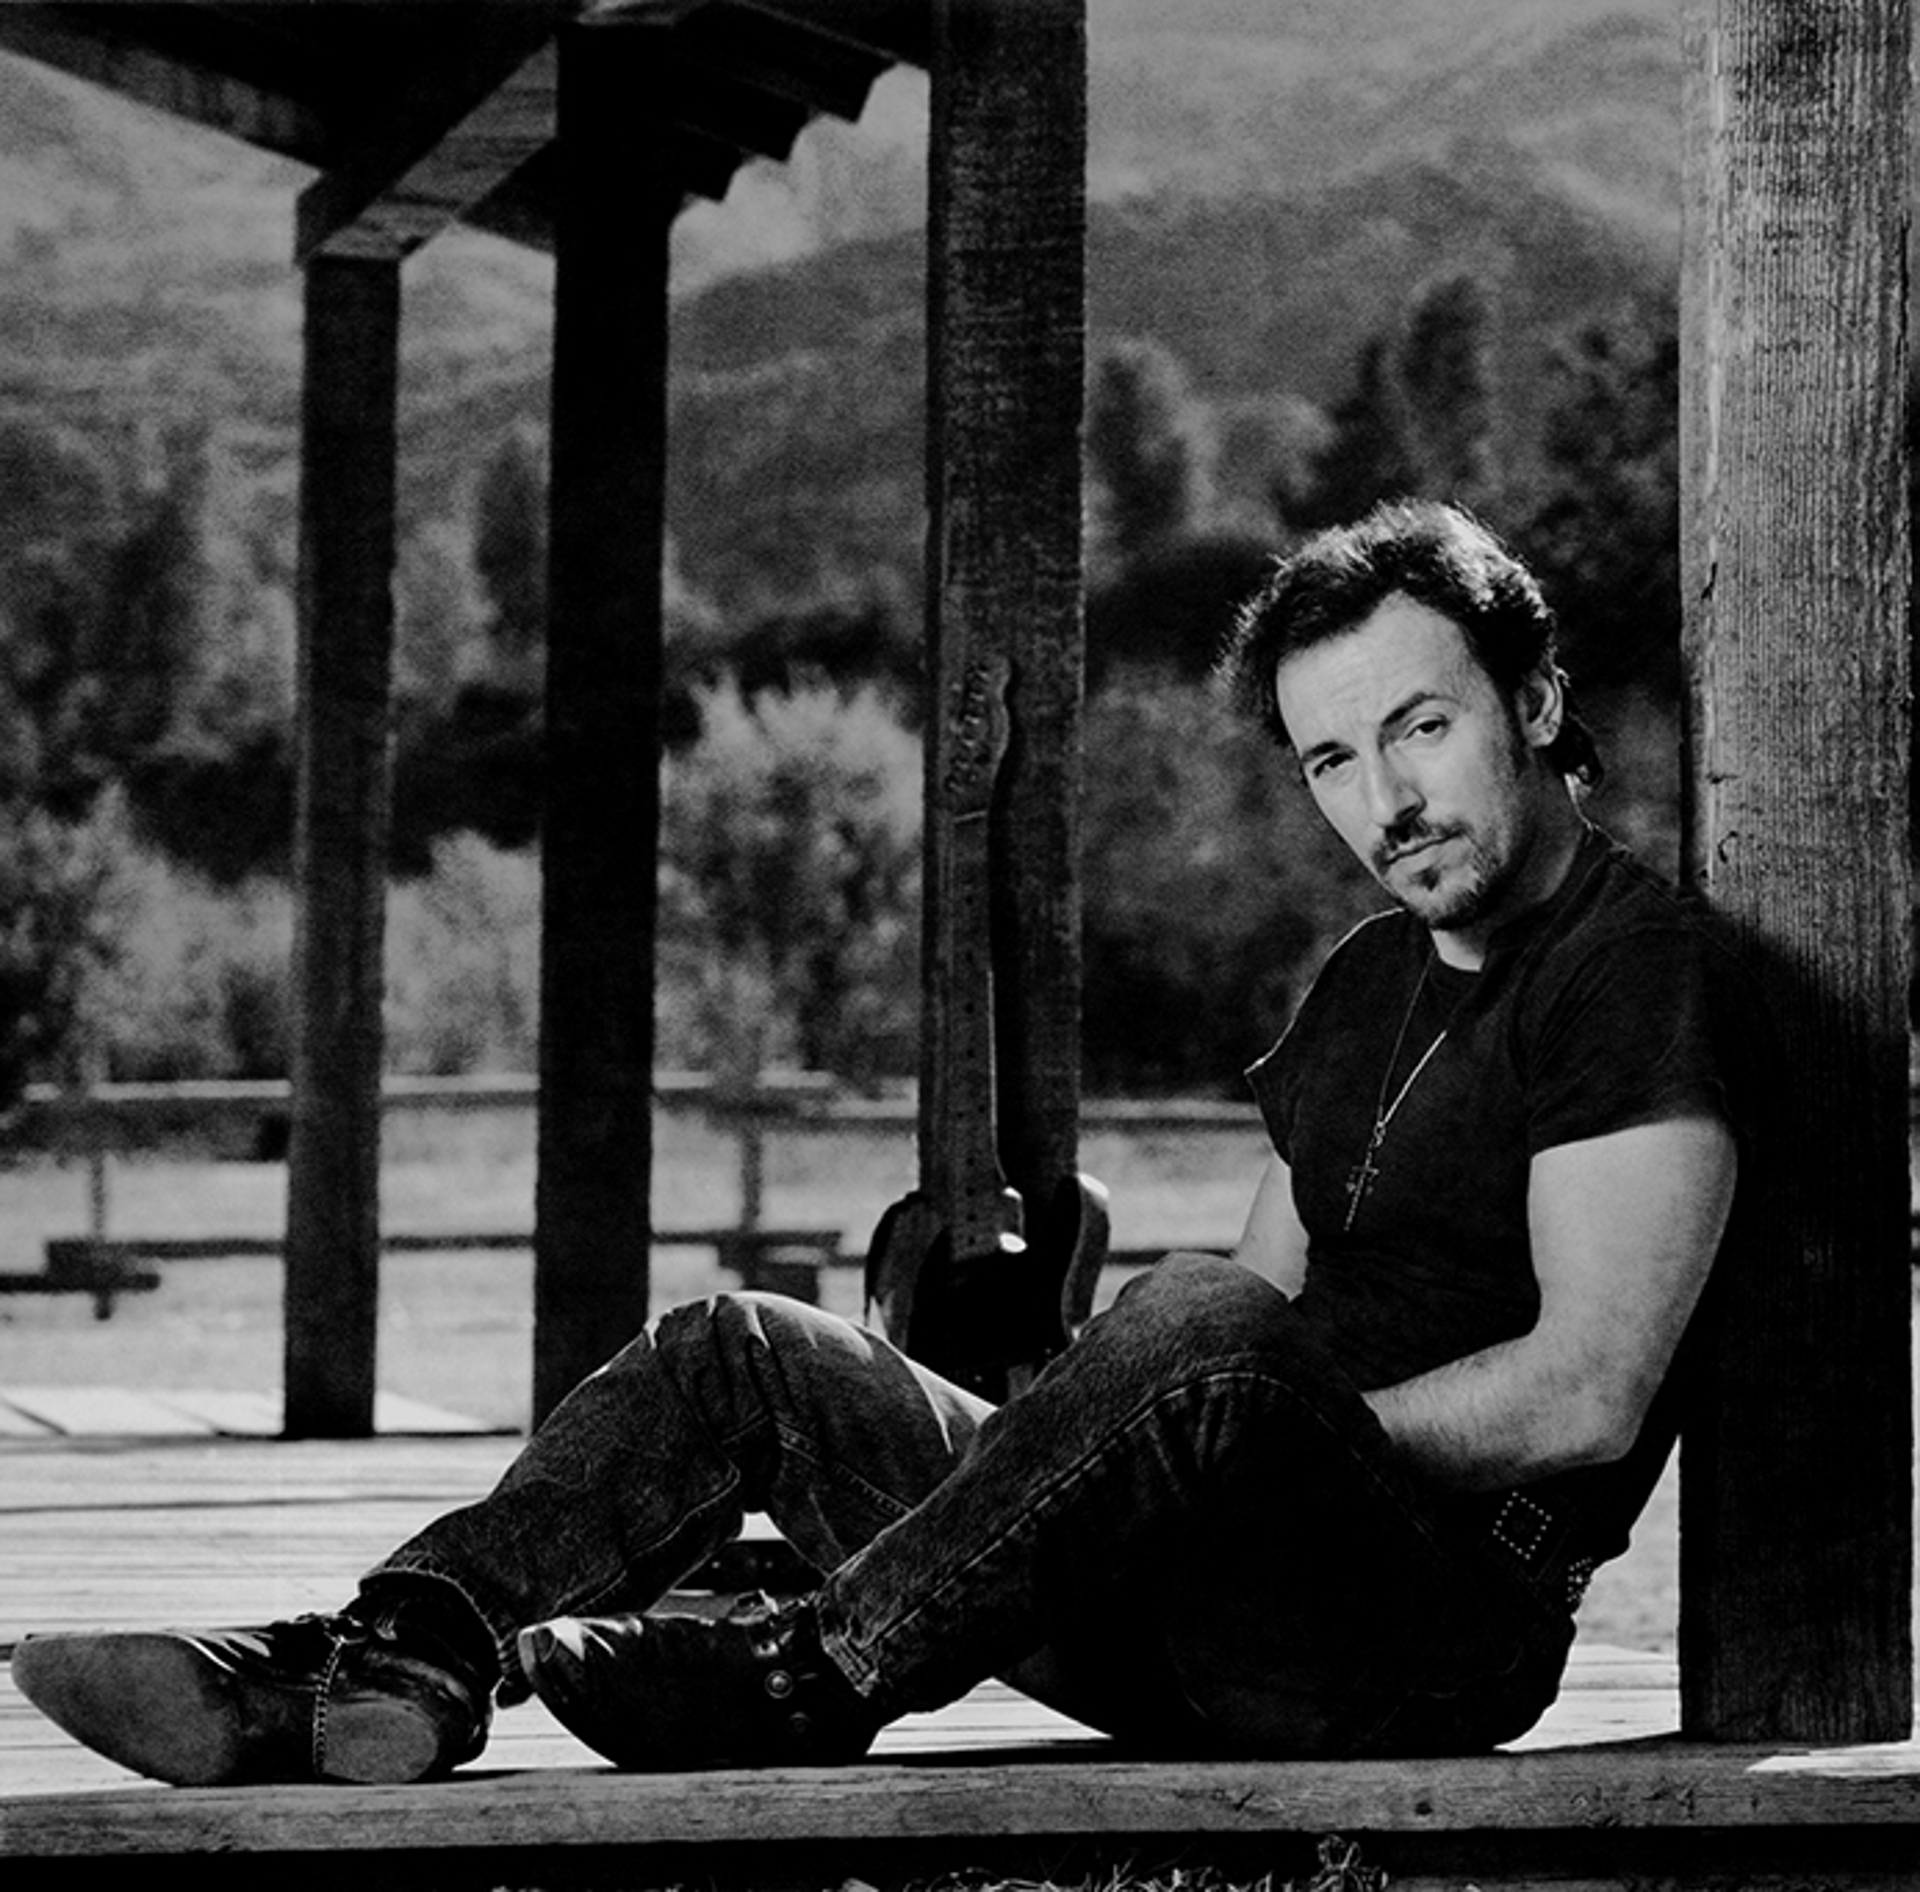 91152 Bruce Springsteen Porch F13 BW by Timothy White